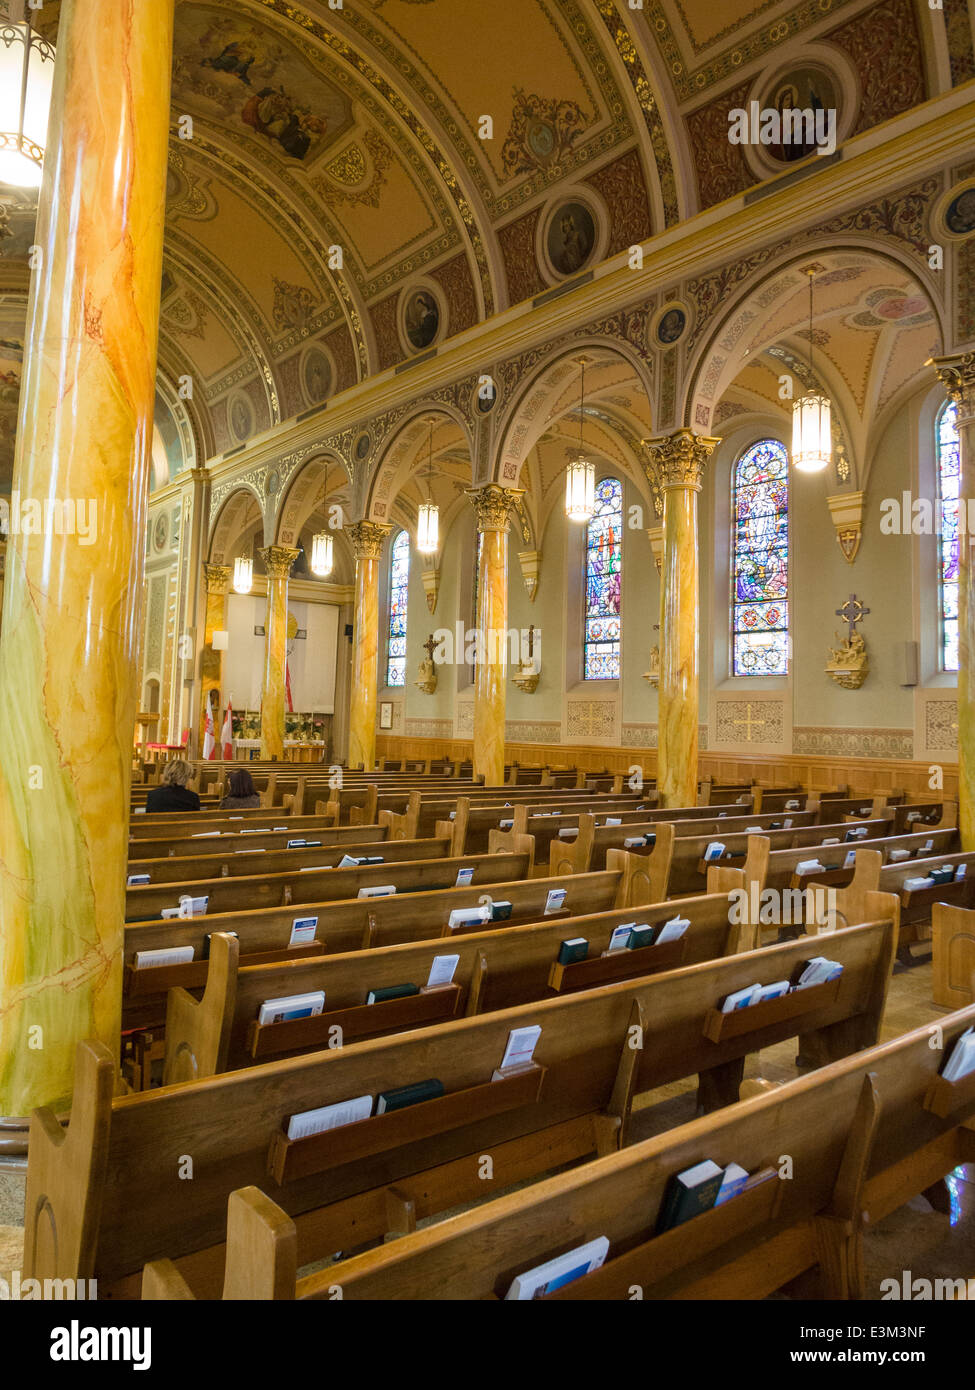 Centre and Right Aisle of St Stanislaus RC Polish Church. The ornate and highly decorated interior of this community - Stock Image